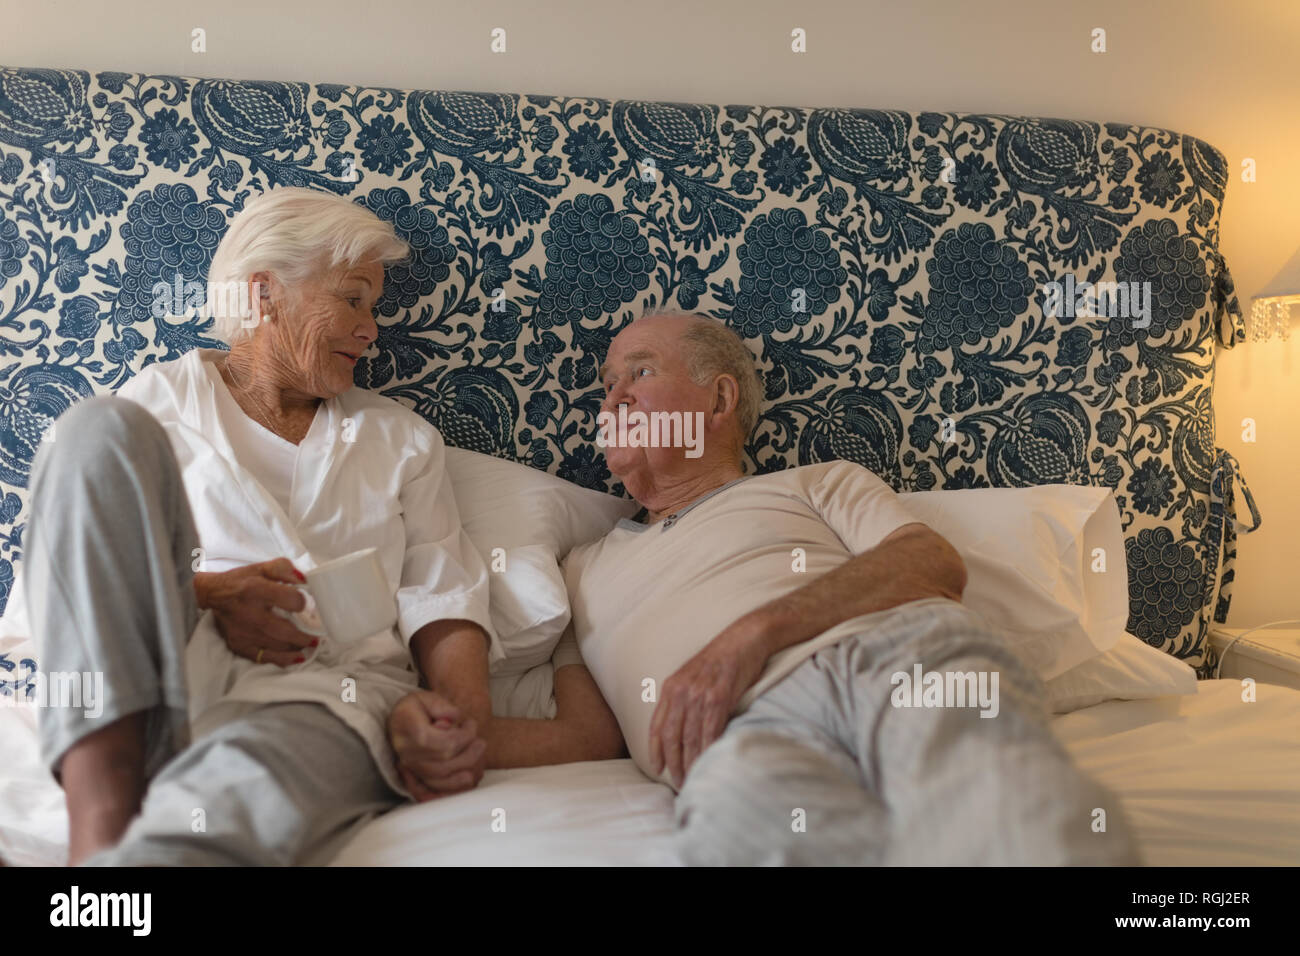 Front view of a senior couple interacting and looking each other in bedroom at home - Stock Image